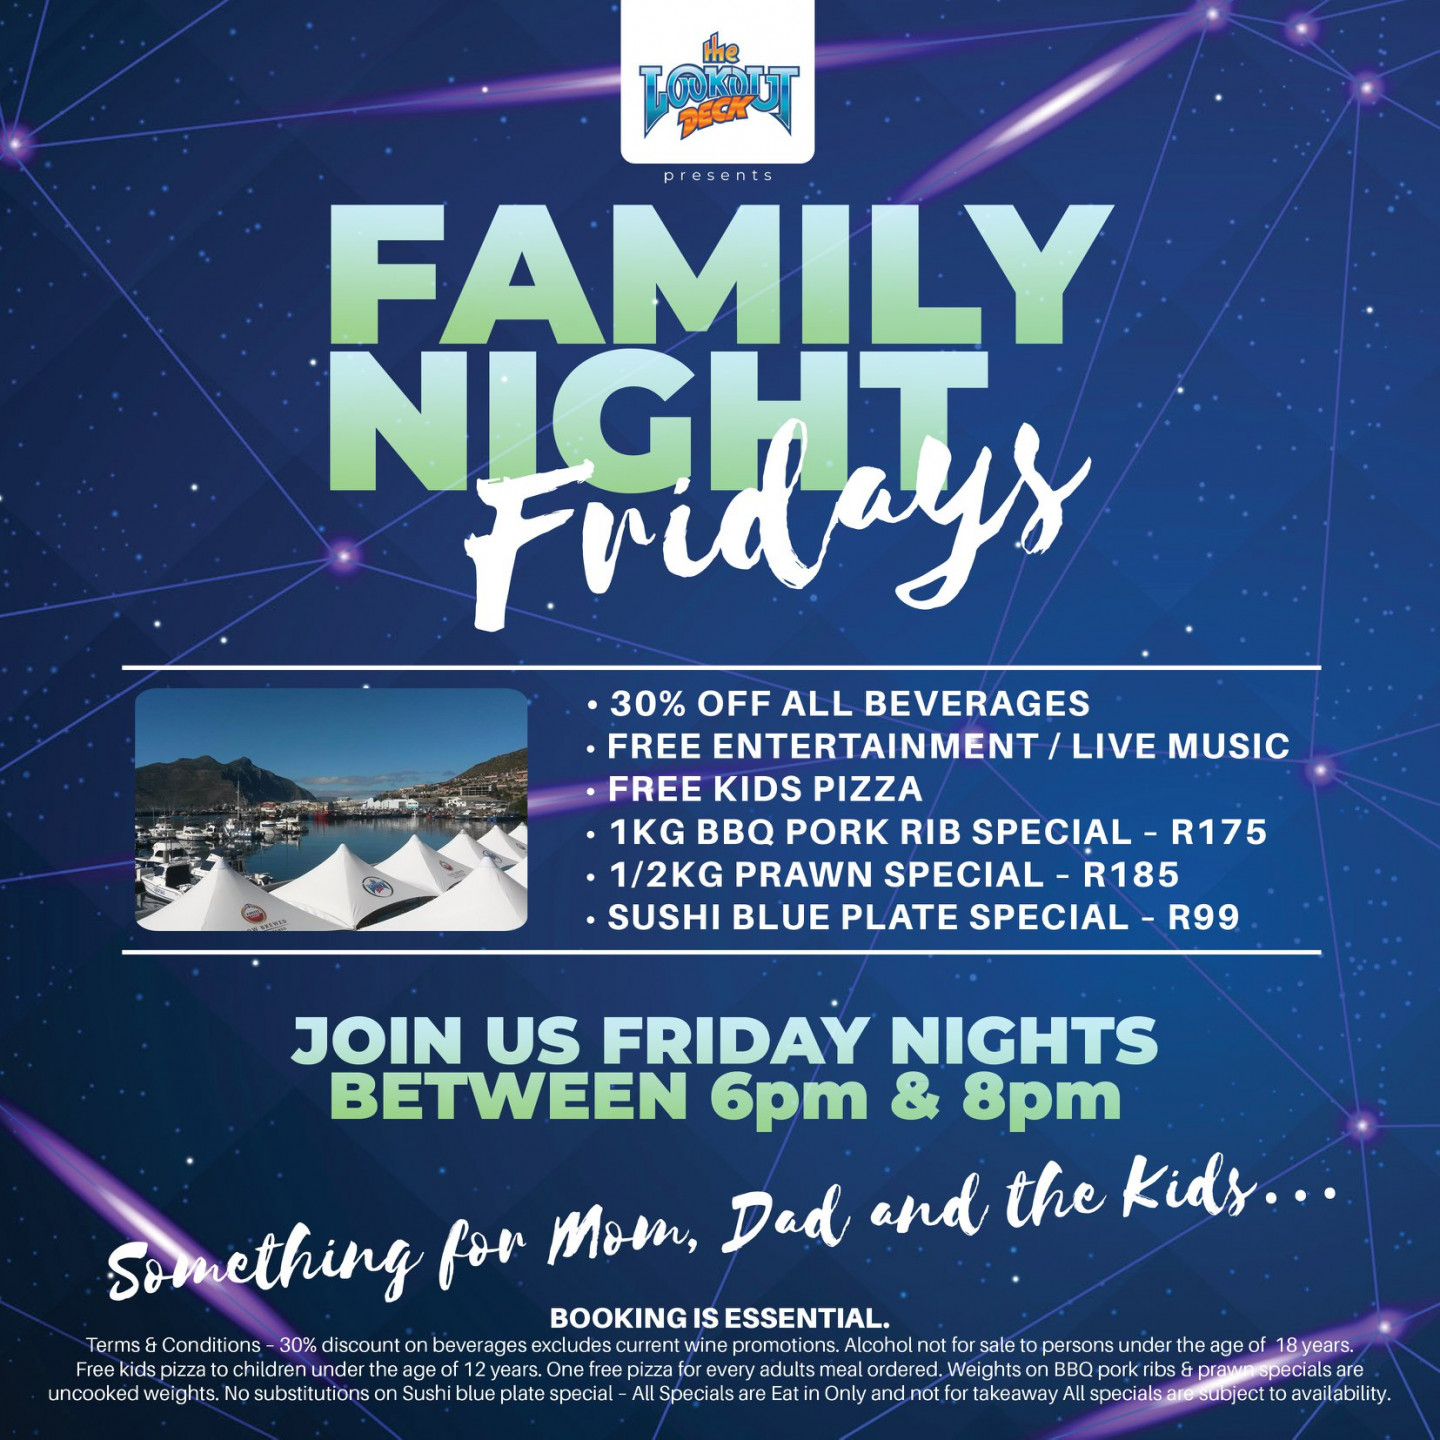 Lookout Deck Family Night Fridays